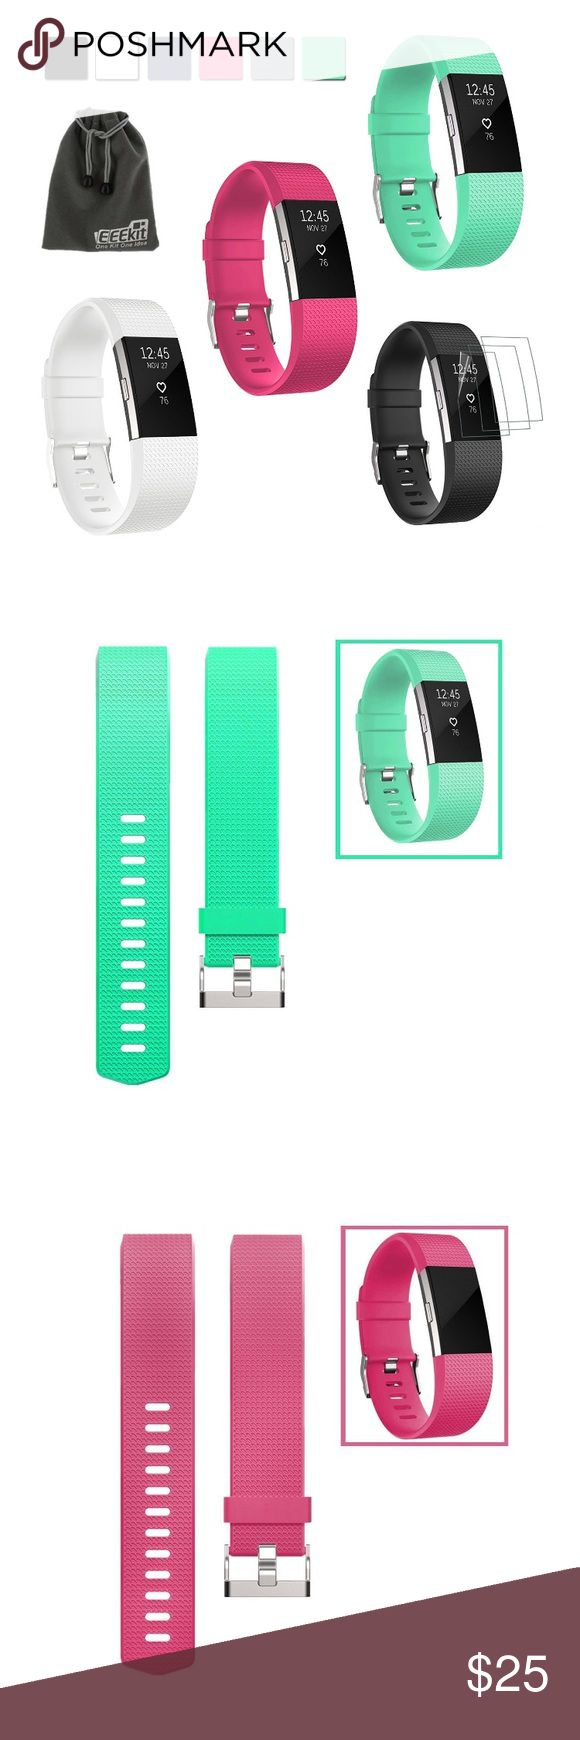 Fitbit ChargeHR 2 bands, set of 3 or individually Size large, bands only, not actual Fitbit screen.  Never been used, purchased on April 5th (ordered wrong size accidentally & no returns through the company) PRICING:  $25 for all three or $10 individually fitbit Accessories Watches